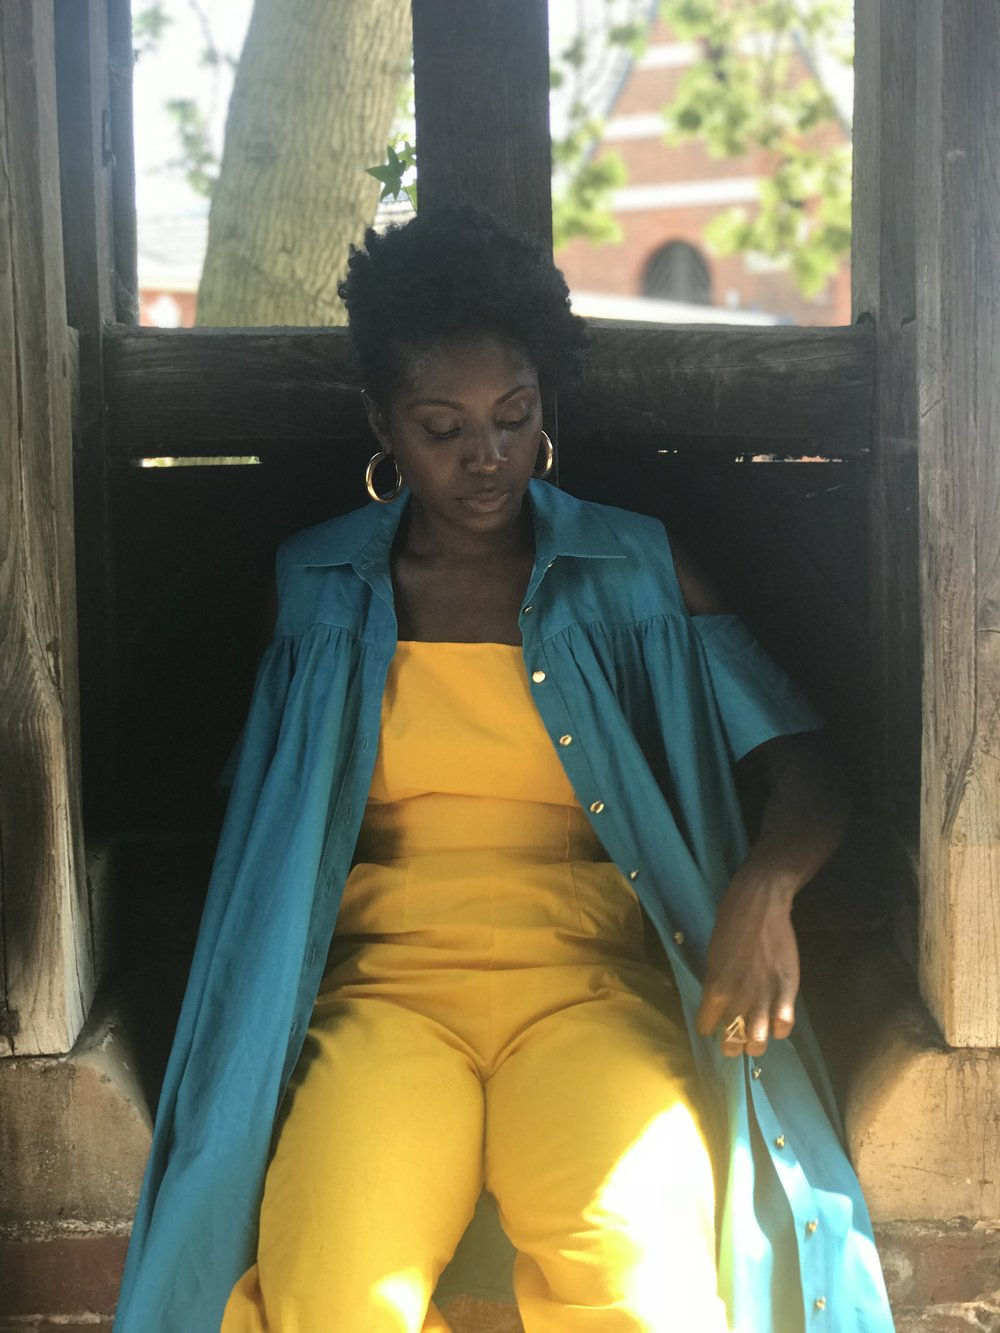 three sixty, self love, intentional living, slow fashion, a quiet style, me and orla, Sarah tasker, Jessica Huie, black girl in om, hey Fran hey, sharmadean Reid, Tamu Thomas, Wellness events, urban retreat